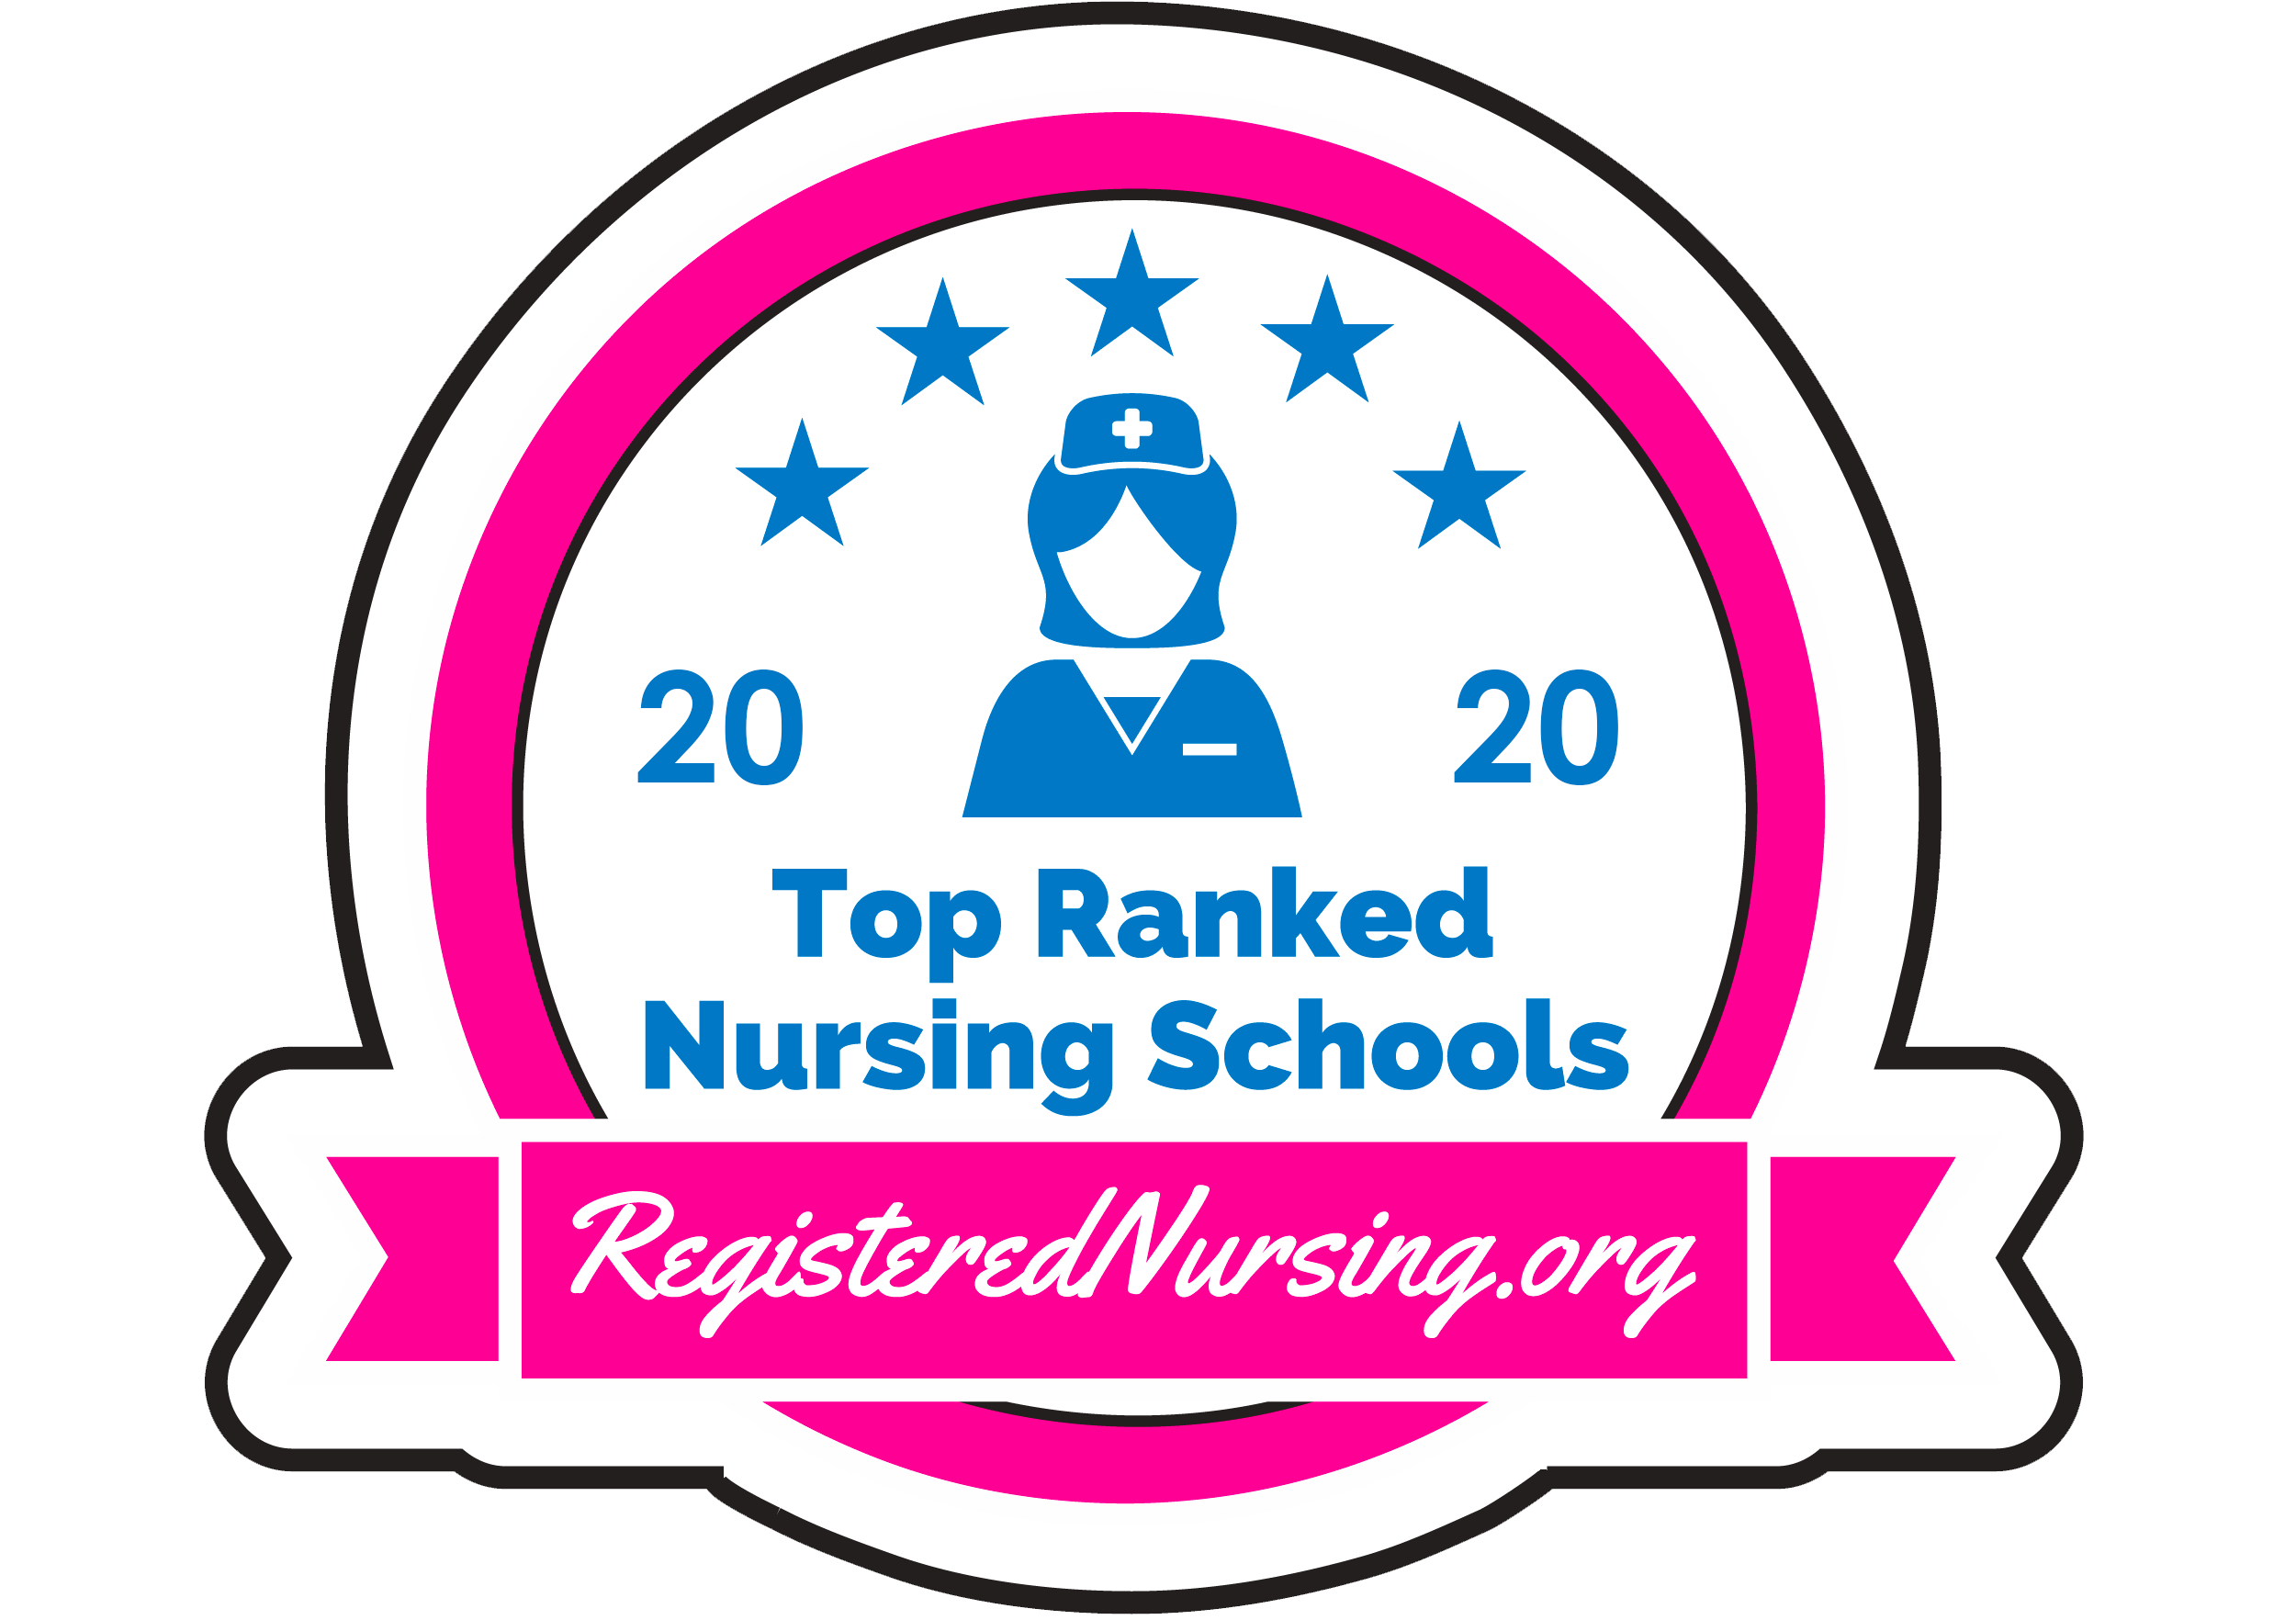 Ranked as one of the best RN Programs in New Jersey for 2020, according to RegisteredNursing.org.